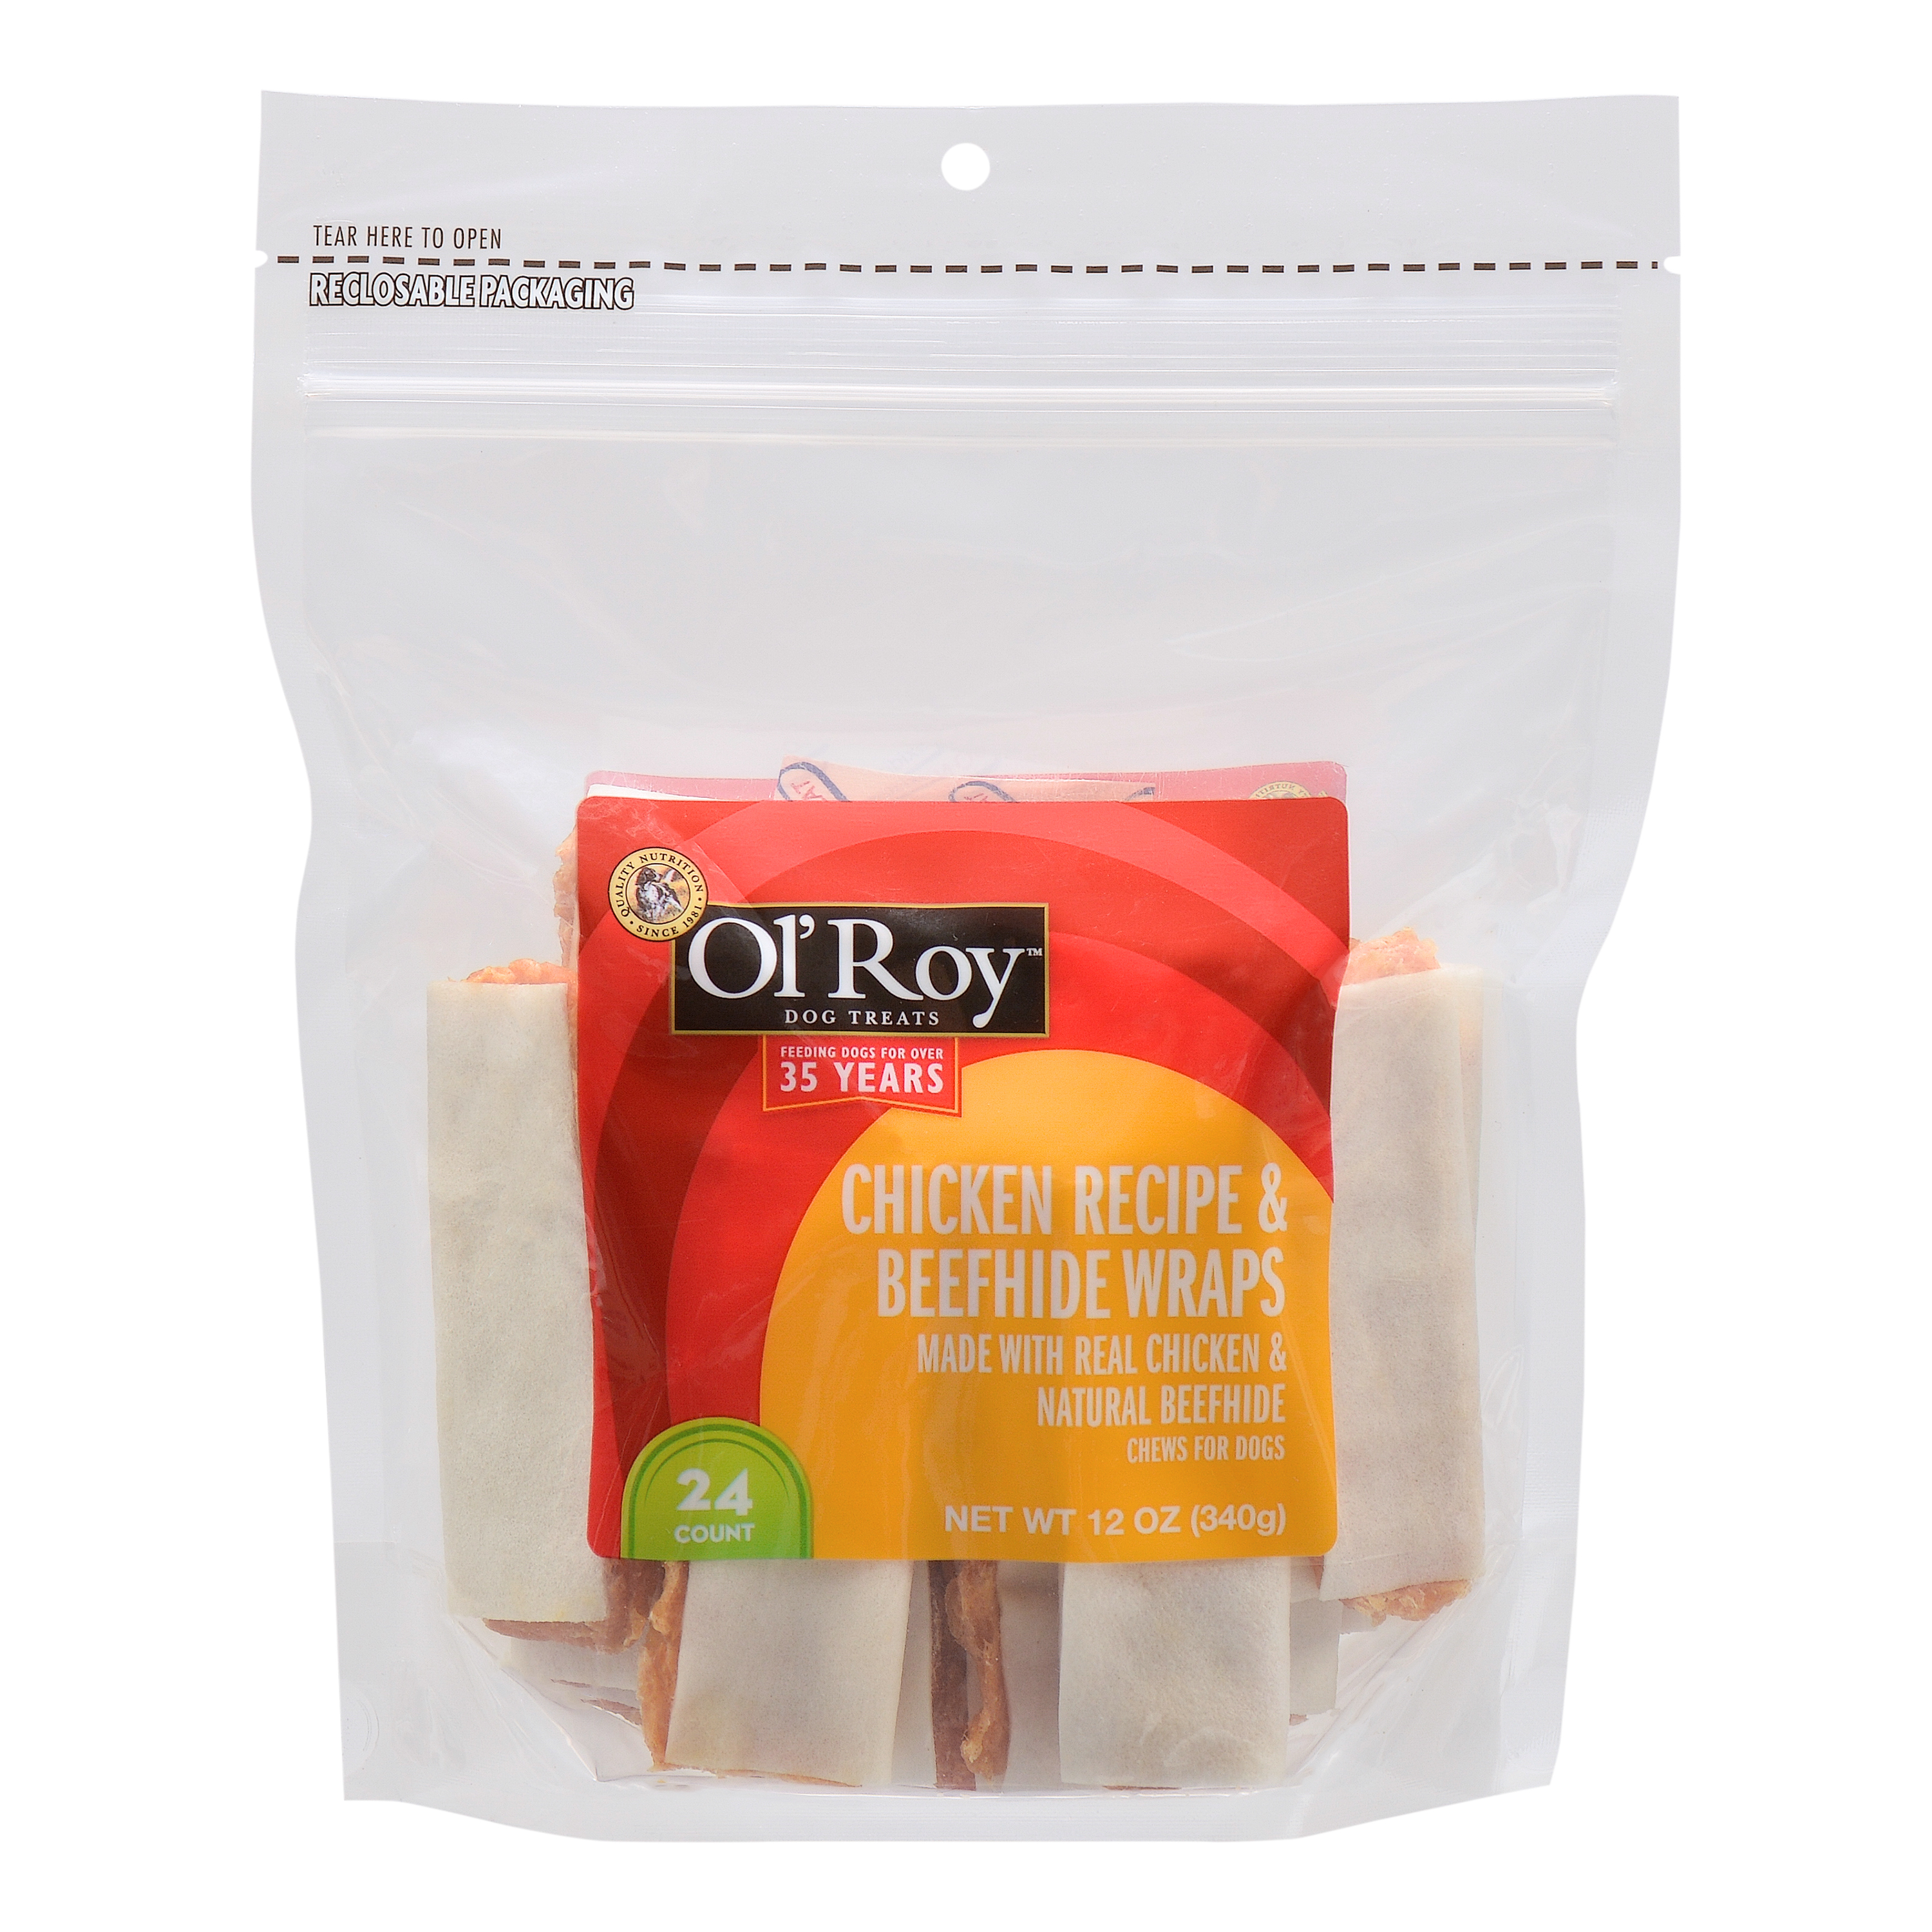 Ol' Roy Dog Treats Chicken and Beefhide Wraps, 24 Count